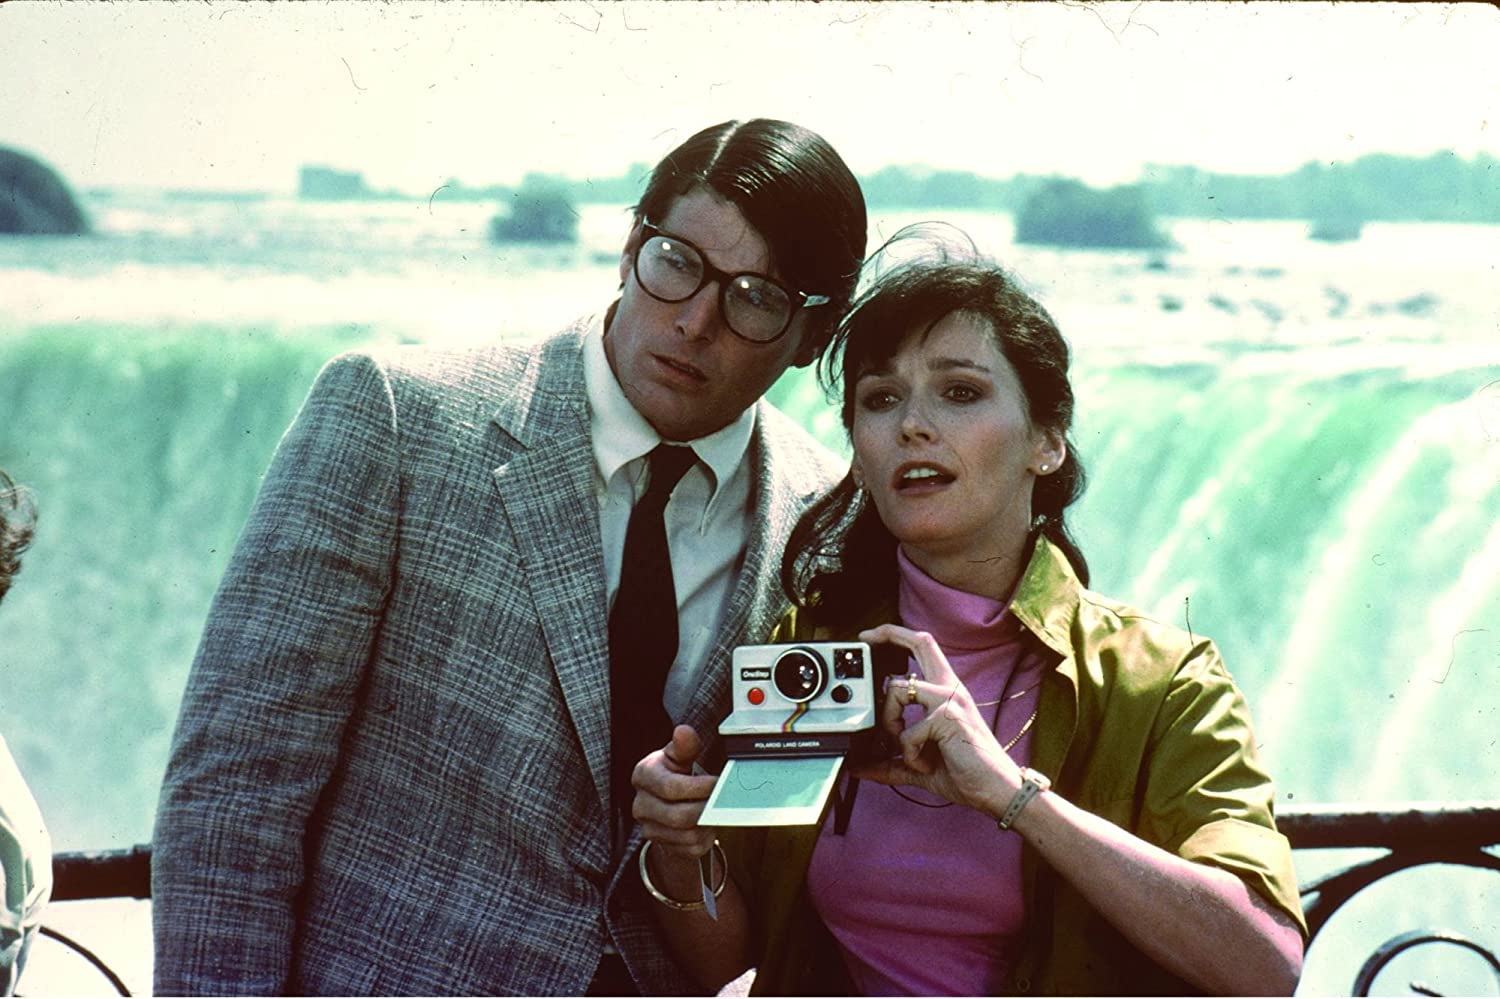 Christopher Reeve and Margot Kidder in Superman II (1980)